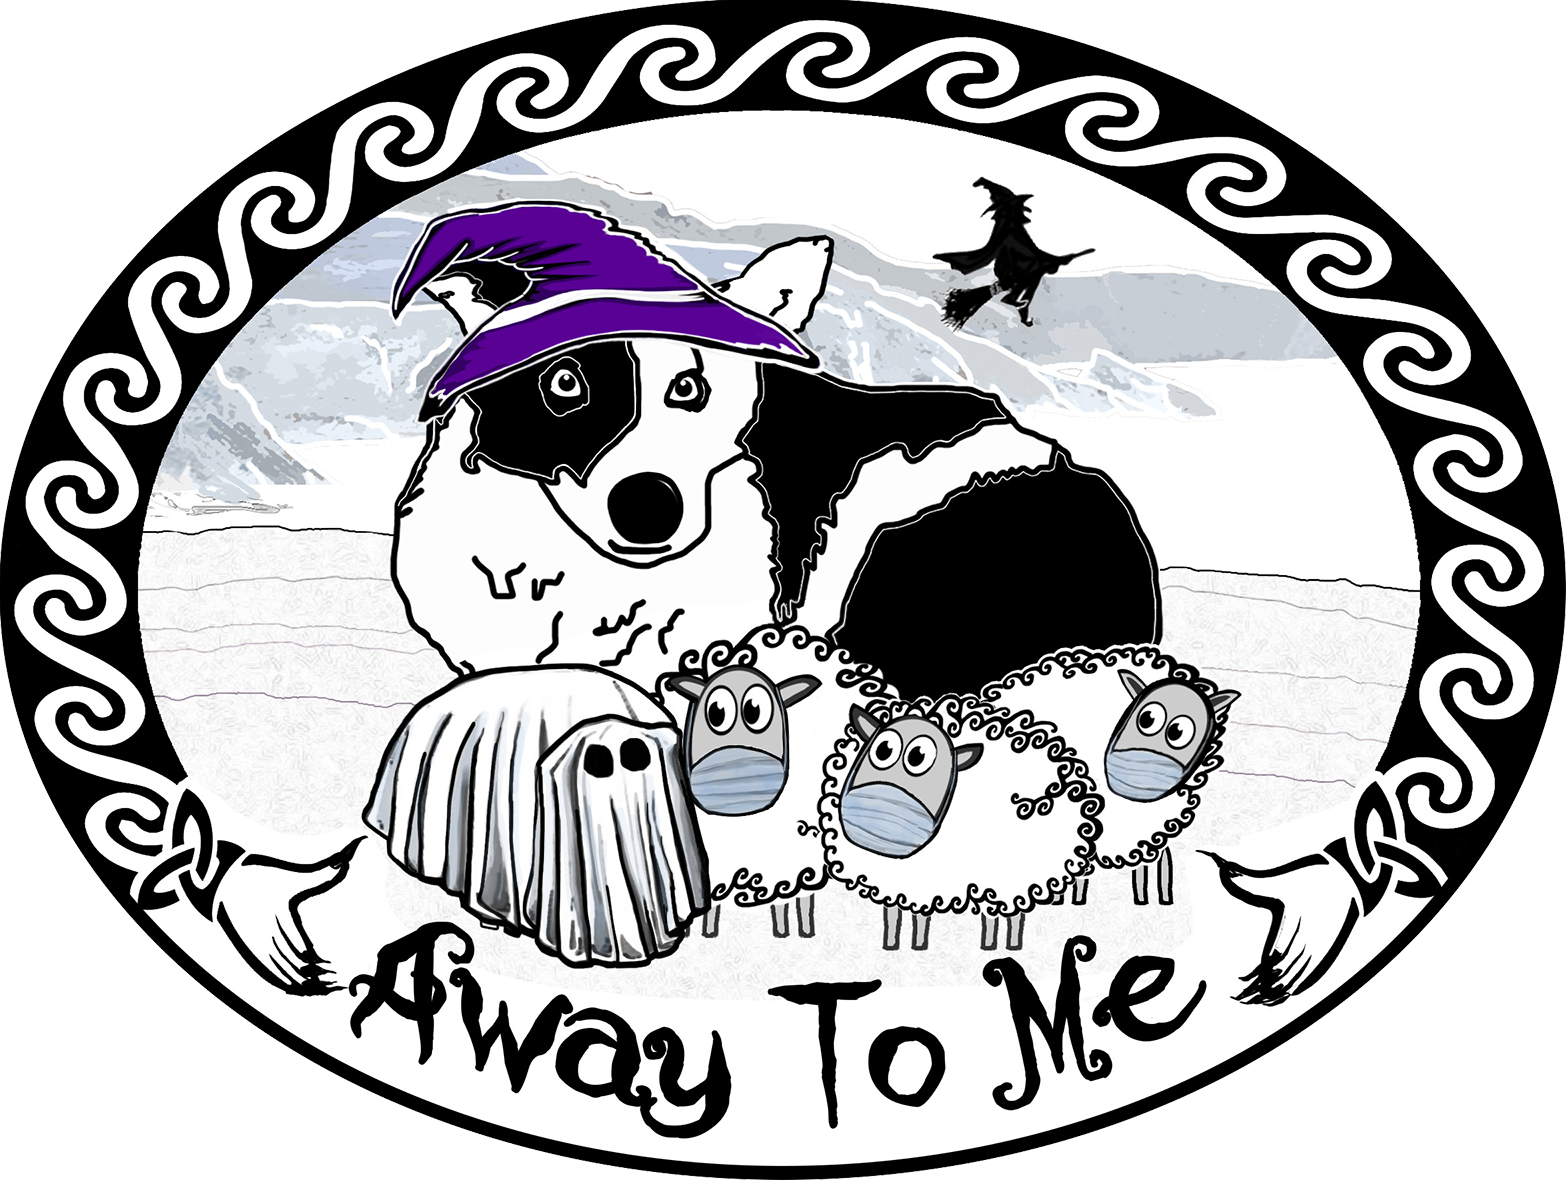 AwayToMe Halloween Logo with masked sheep and Nell the sheepdog wearing a witches hat